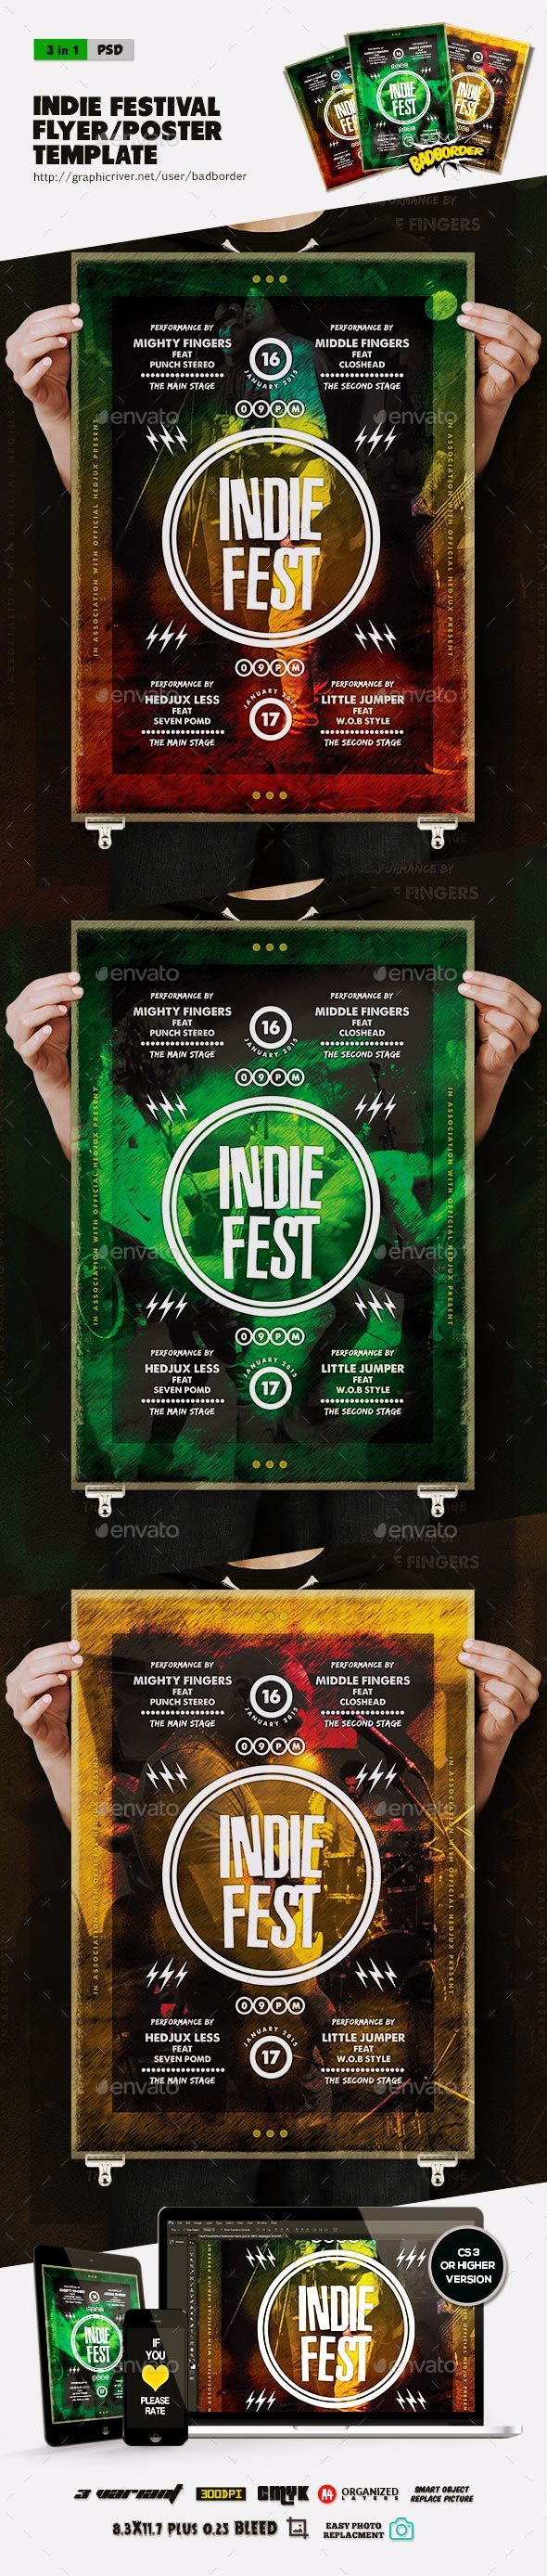 Indie Festival Flyer/Poster - Events Flyers